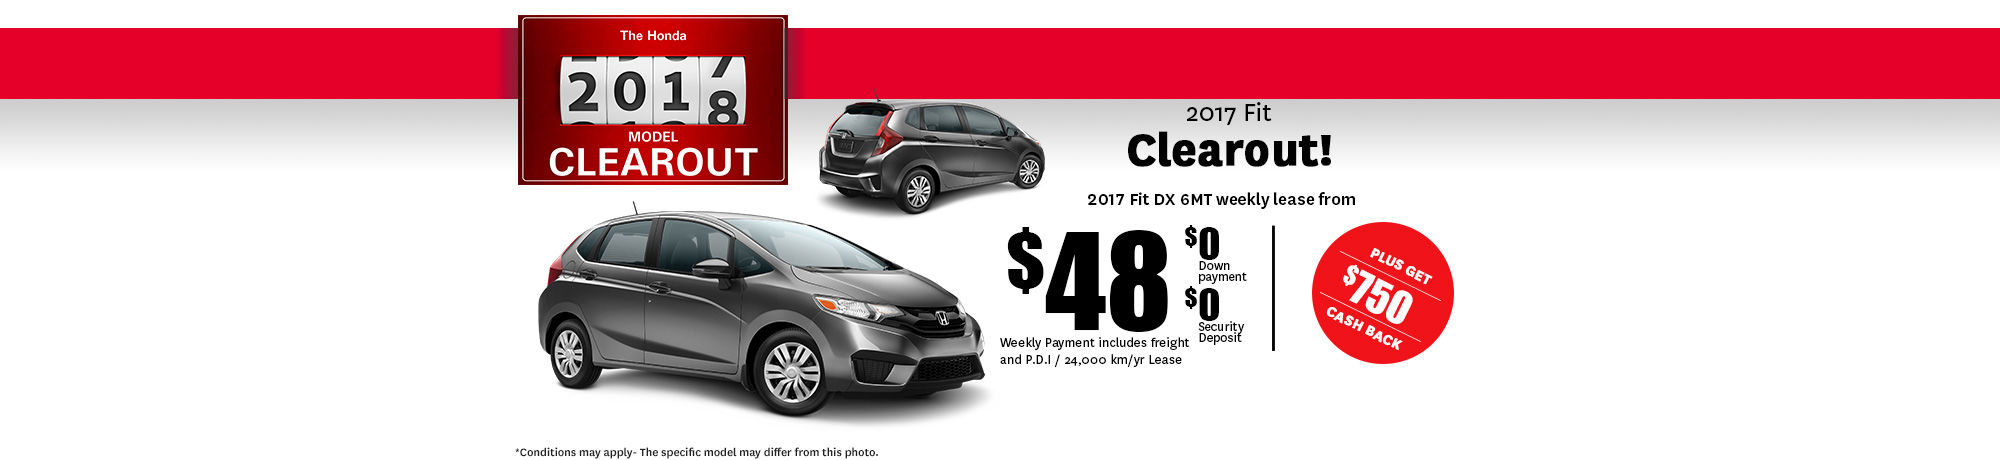 2017 Honda Clearout Fit- October